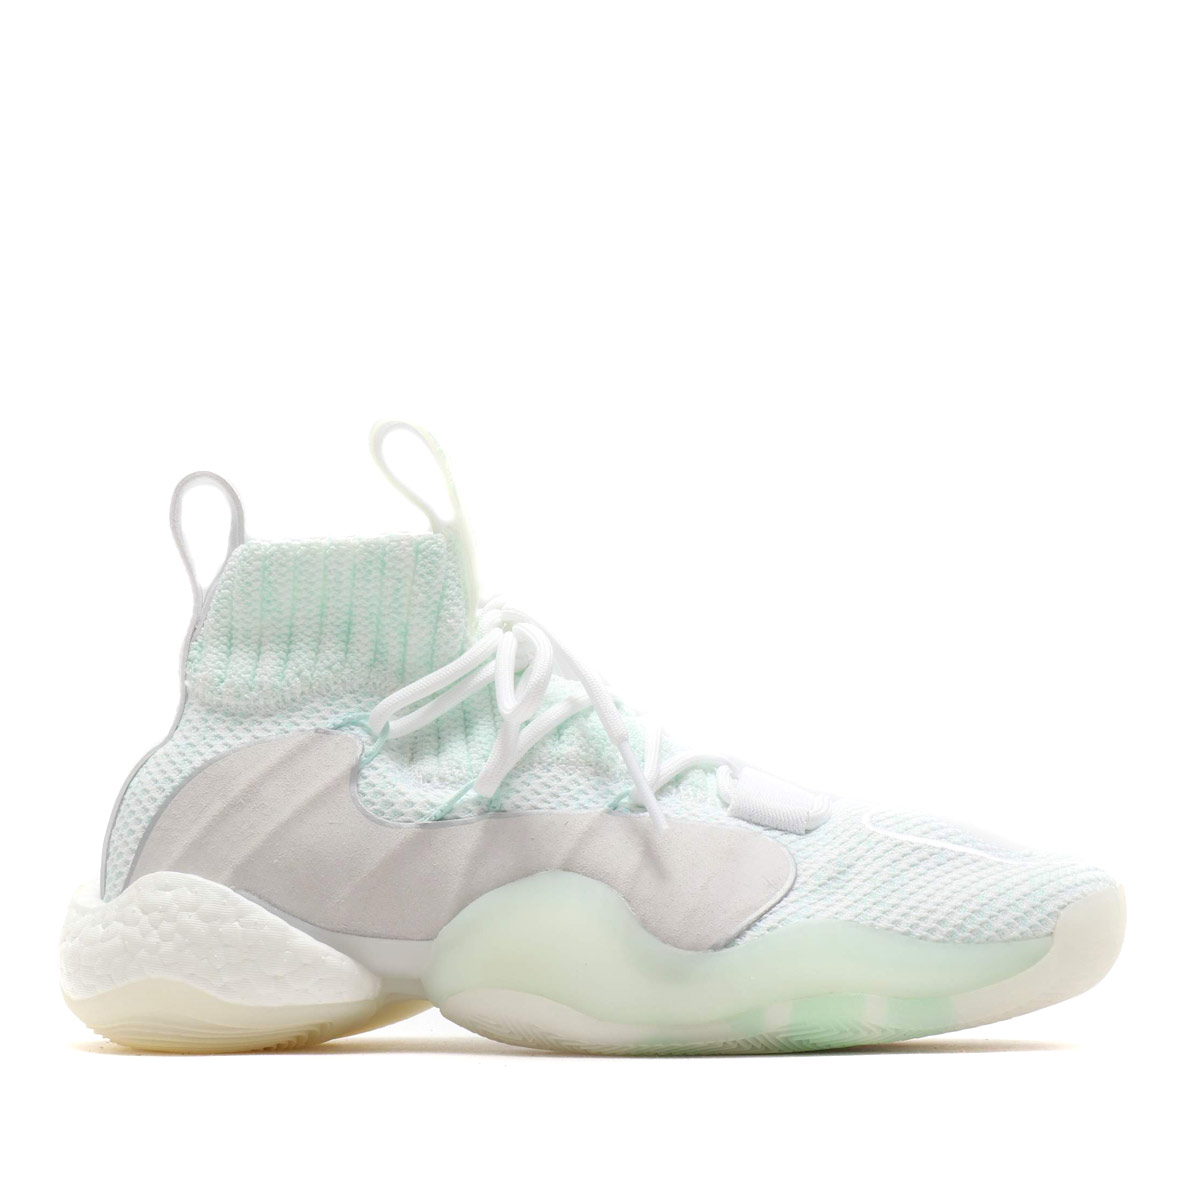 adidas Originals CRAZY BYW LVL X(RUNNING WHITE/ICE MINT/TRUE ORANGE)(アディダスオリジナルス クレイジー BYW LVL X)【メンズ】【スニーカー】【19SS-I】